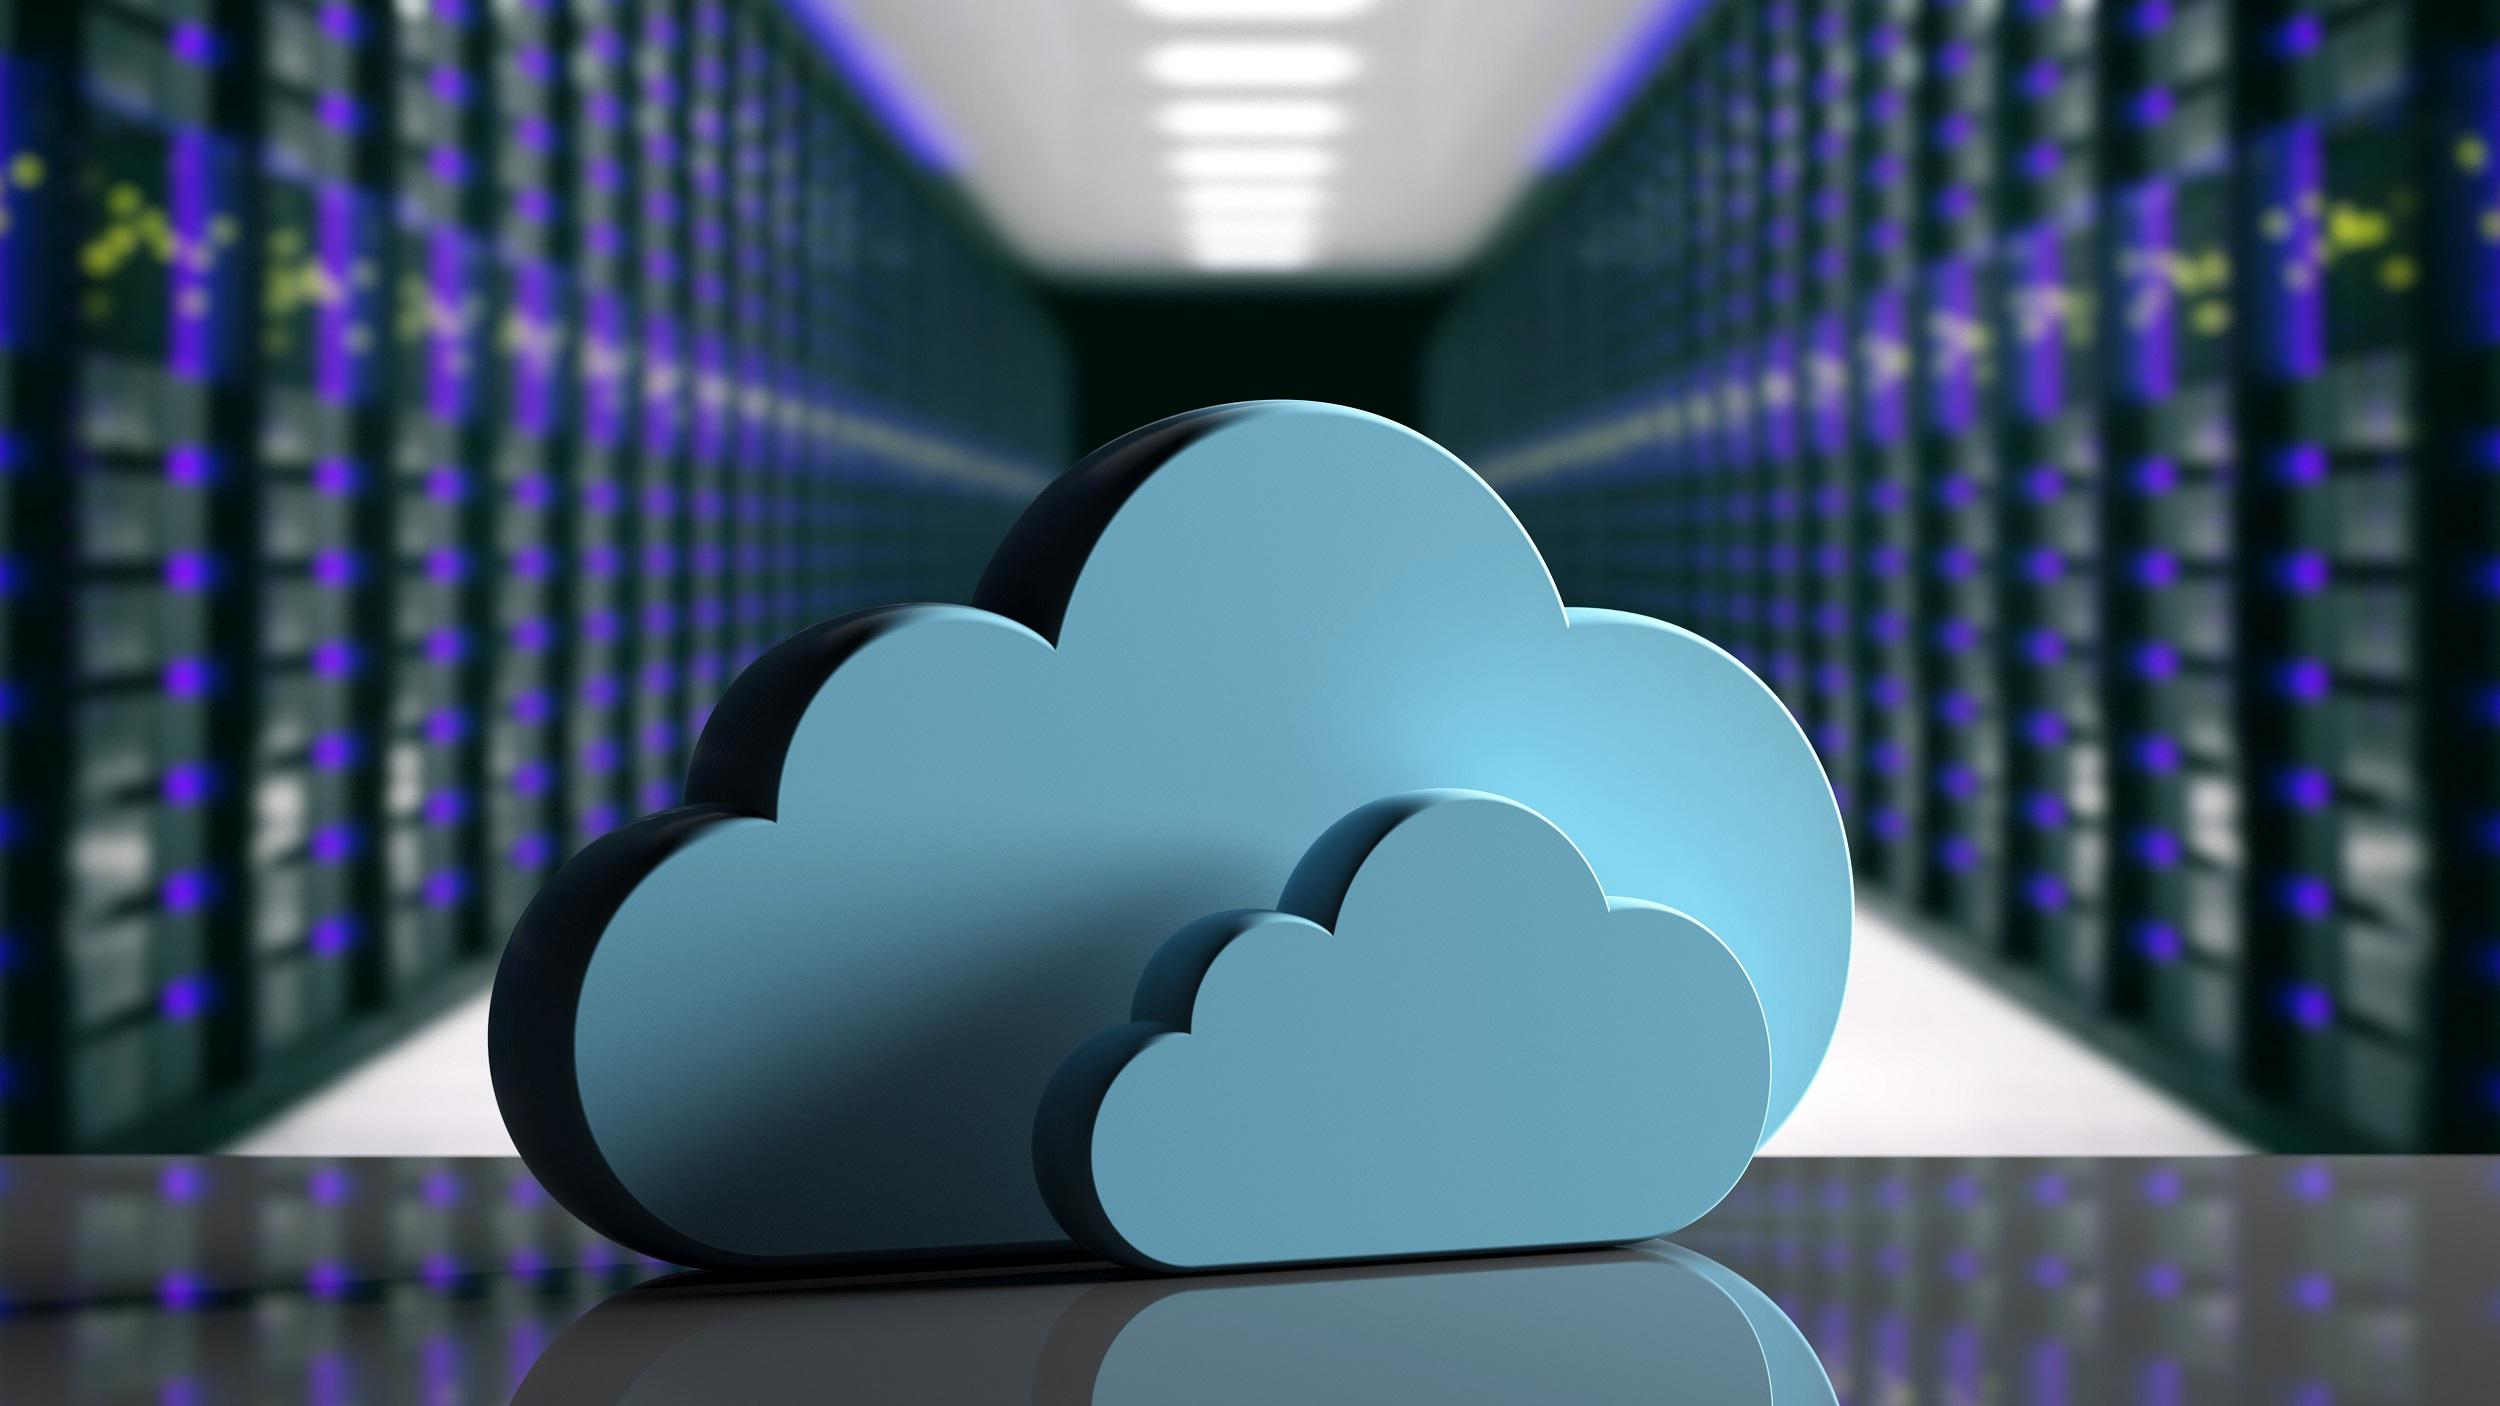 The 5 Biggest Cloud Computing Trends In 2022